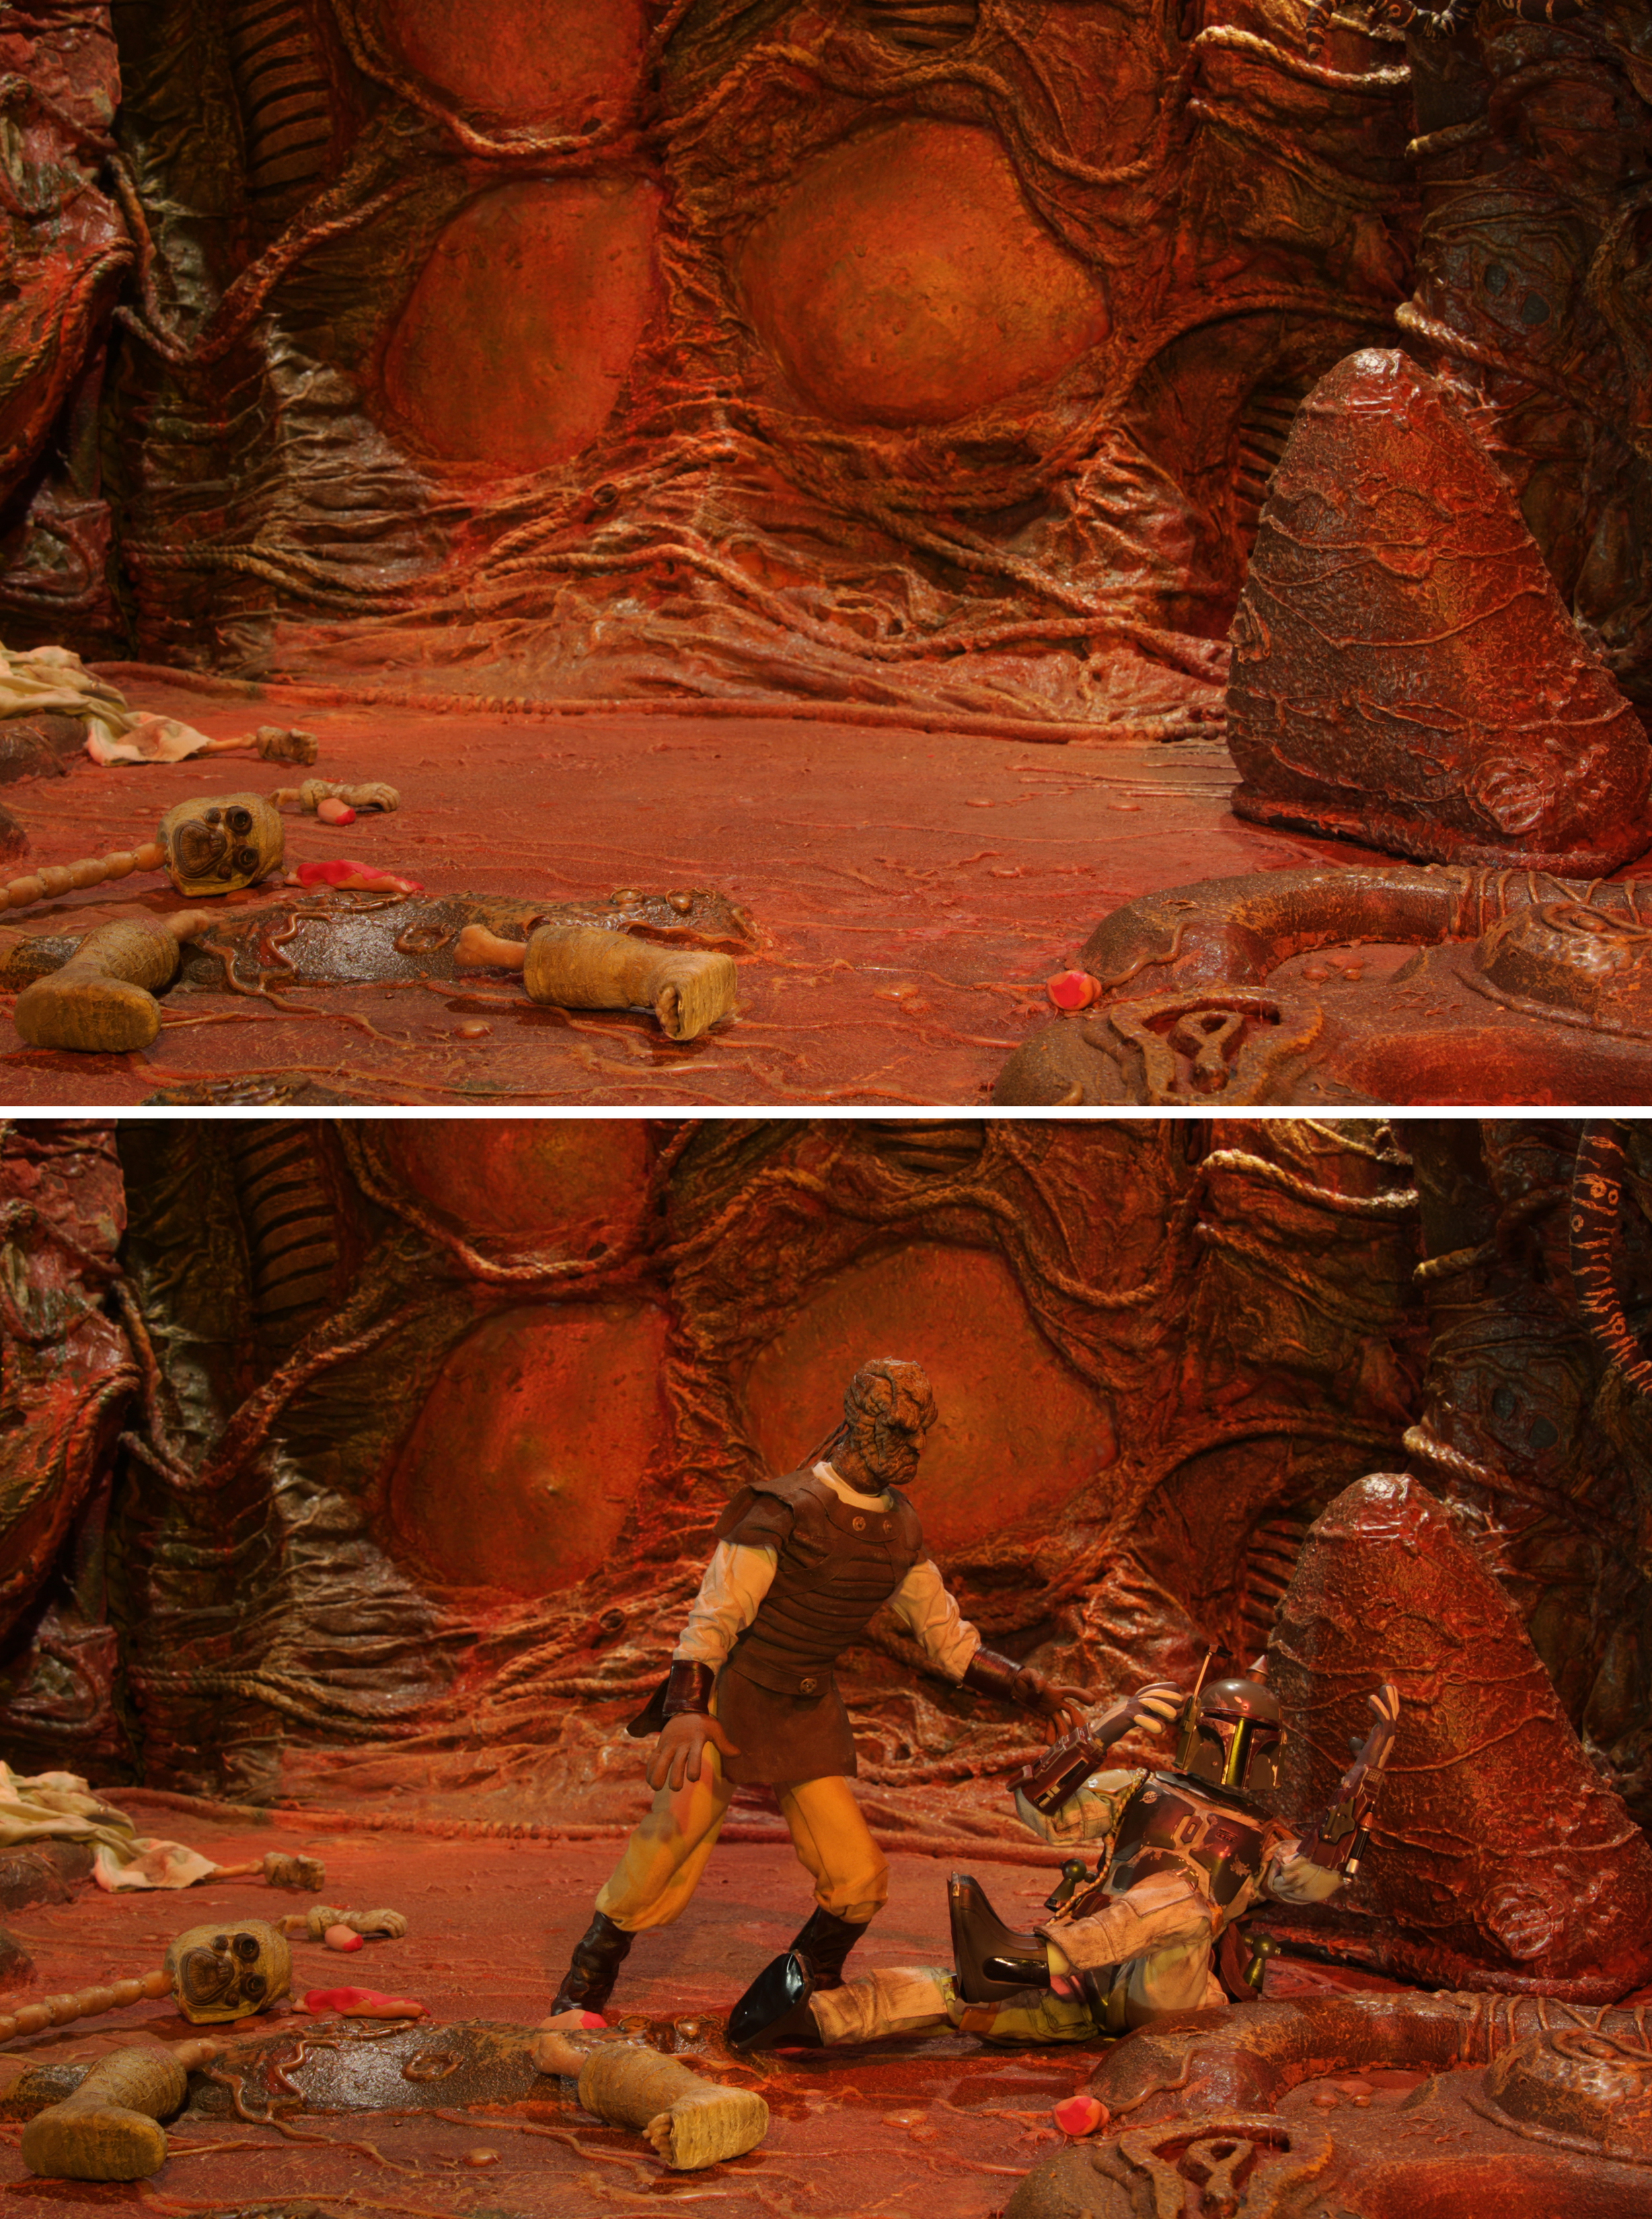 Robot Chicken Star Wars 3 Image 76.jpg